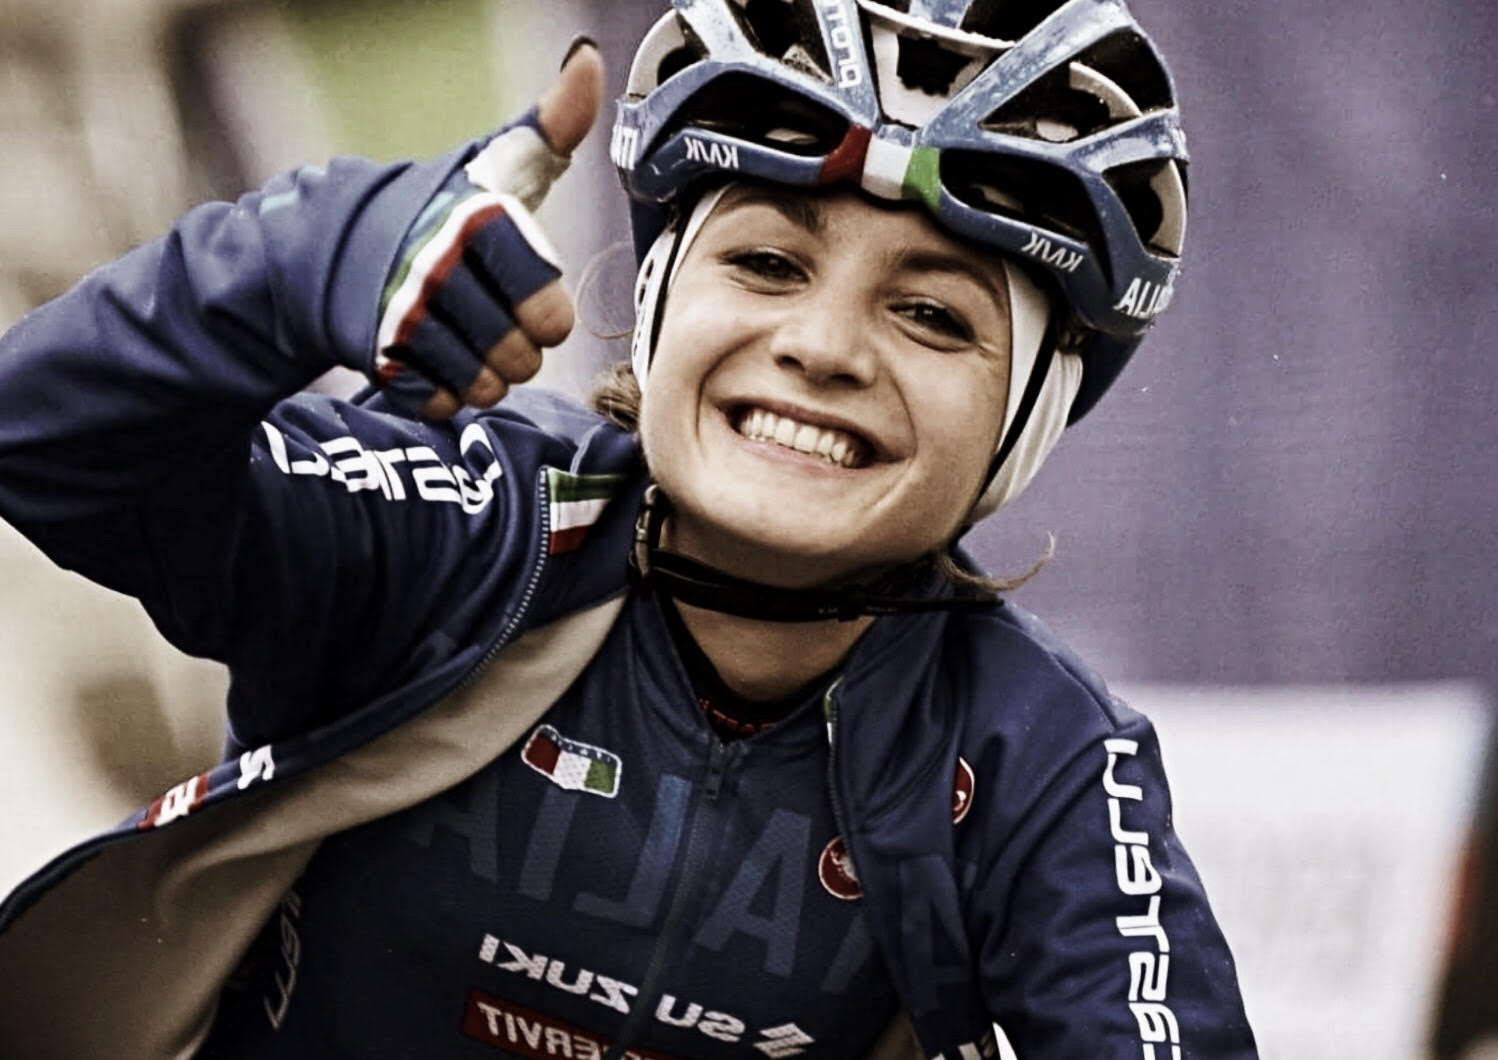 palu-meet-the-rider-nicole-dagsotin-nationals.jpg